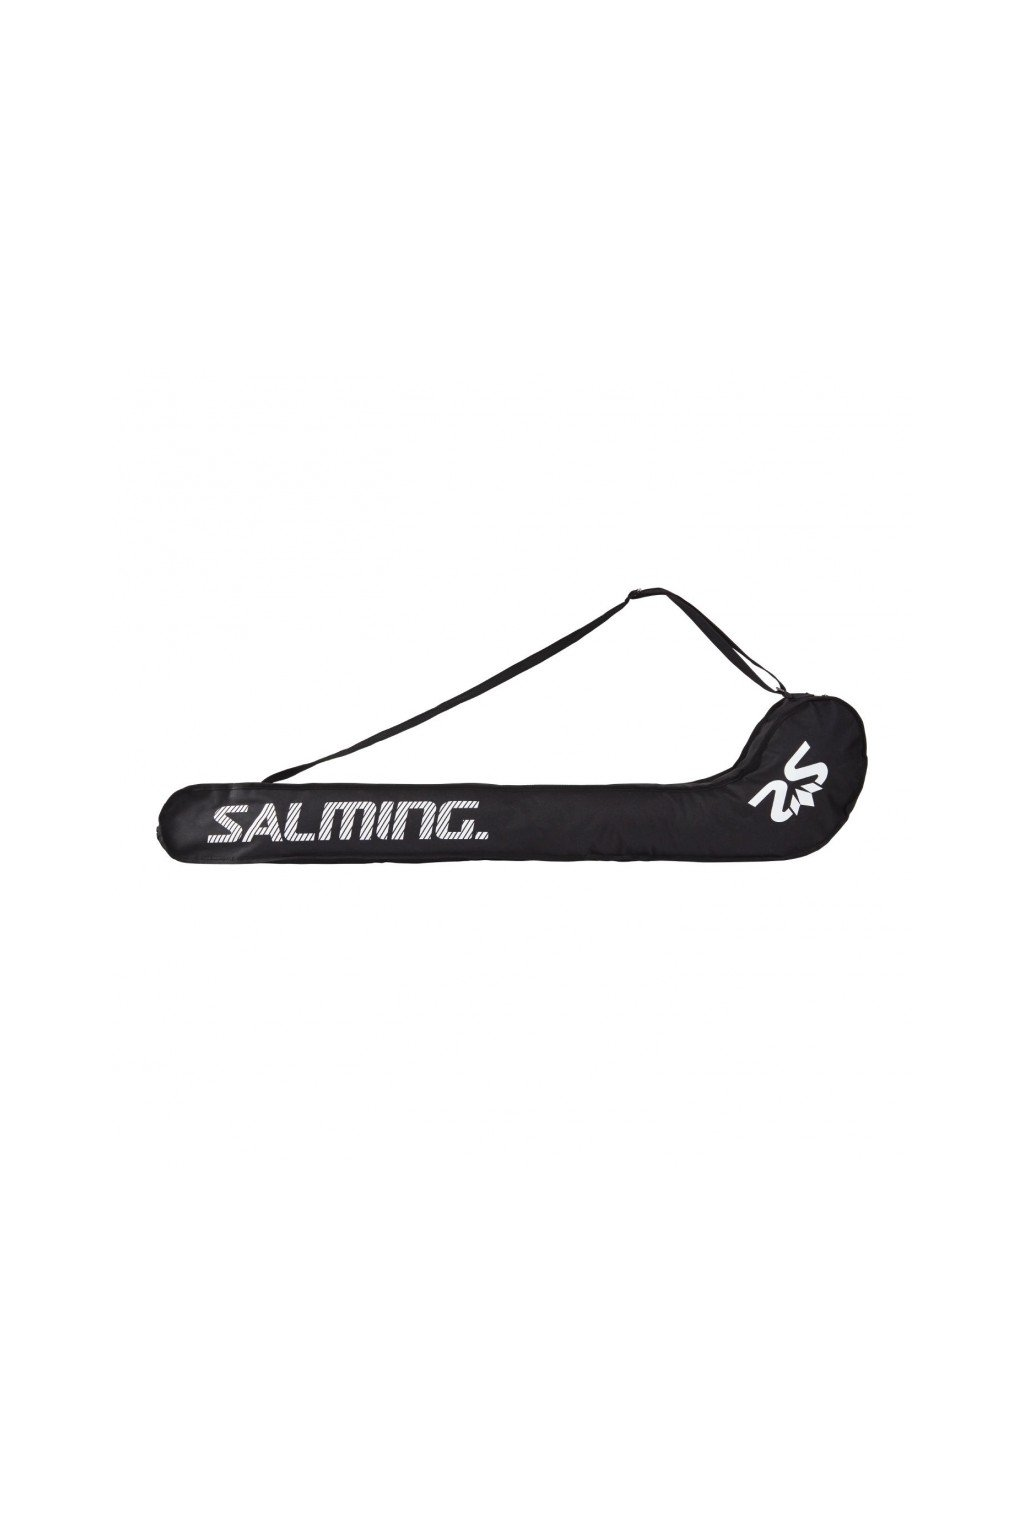 salming tour stickbag jr black